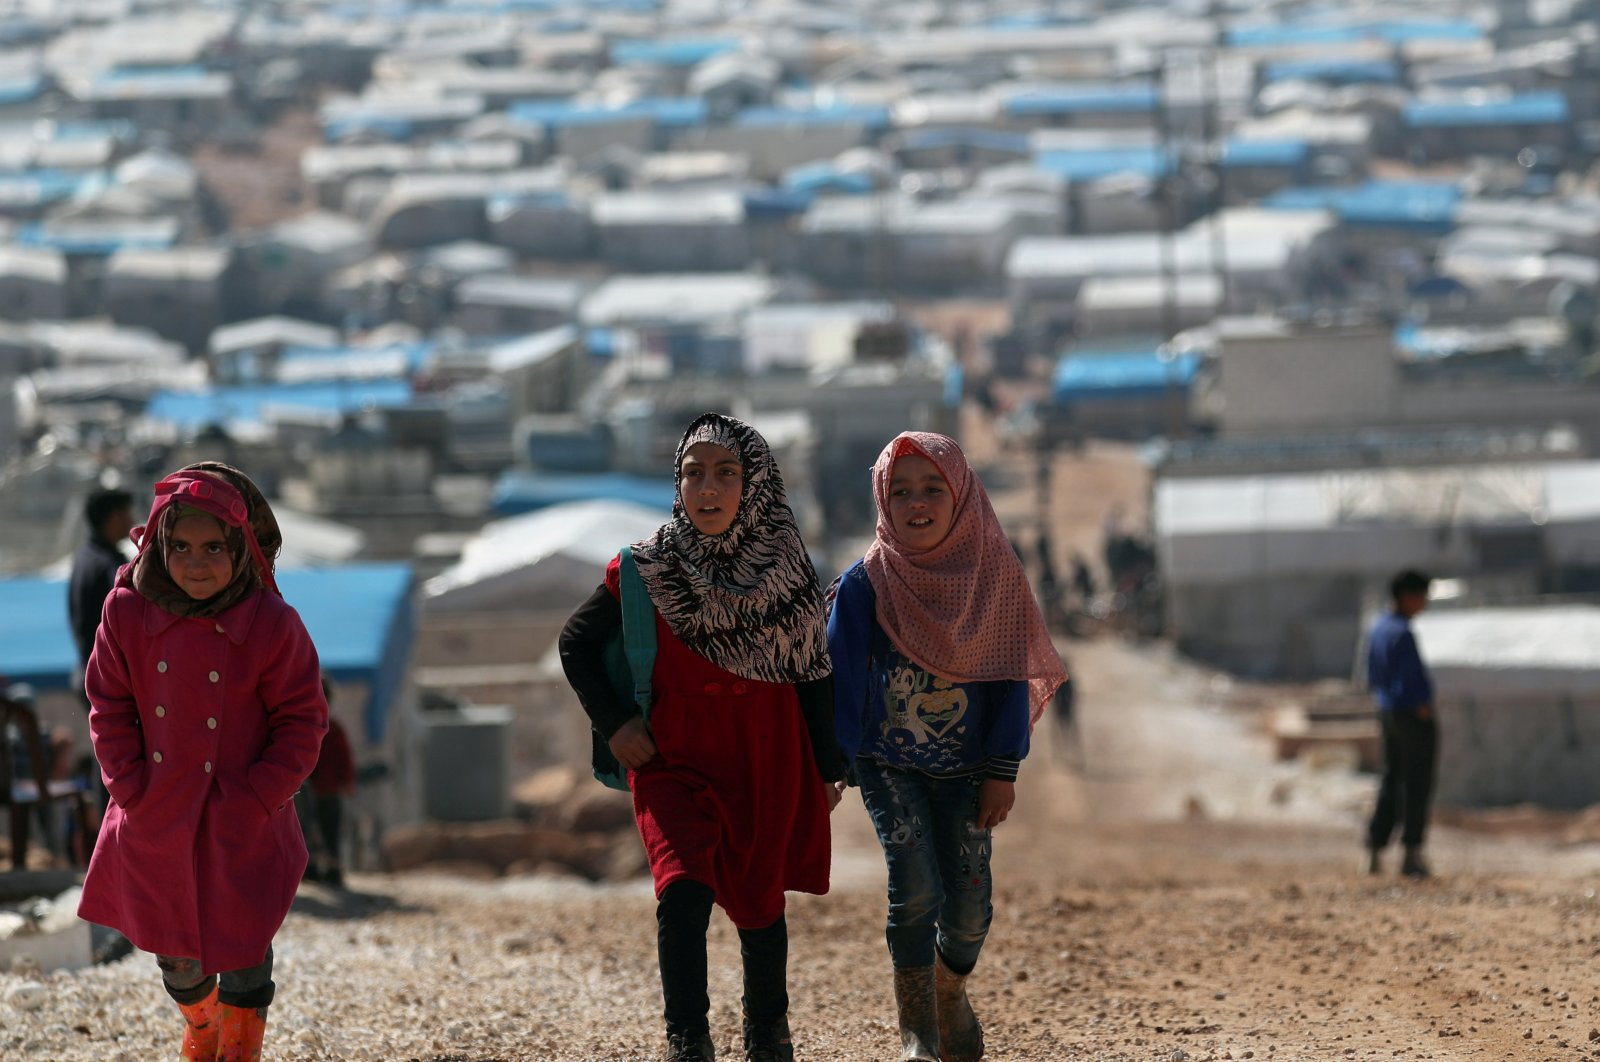 Internally displaced Syrian students walk together in Atmeh IDP camp, located near the border with Turkey, Syria, Mar. 4, 2020. (REUTERS Photo)